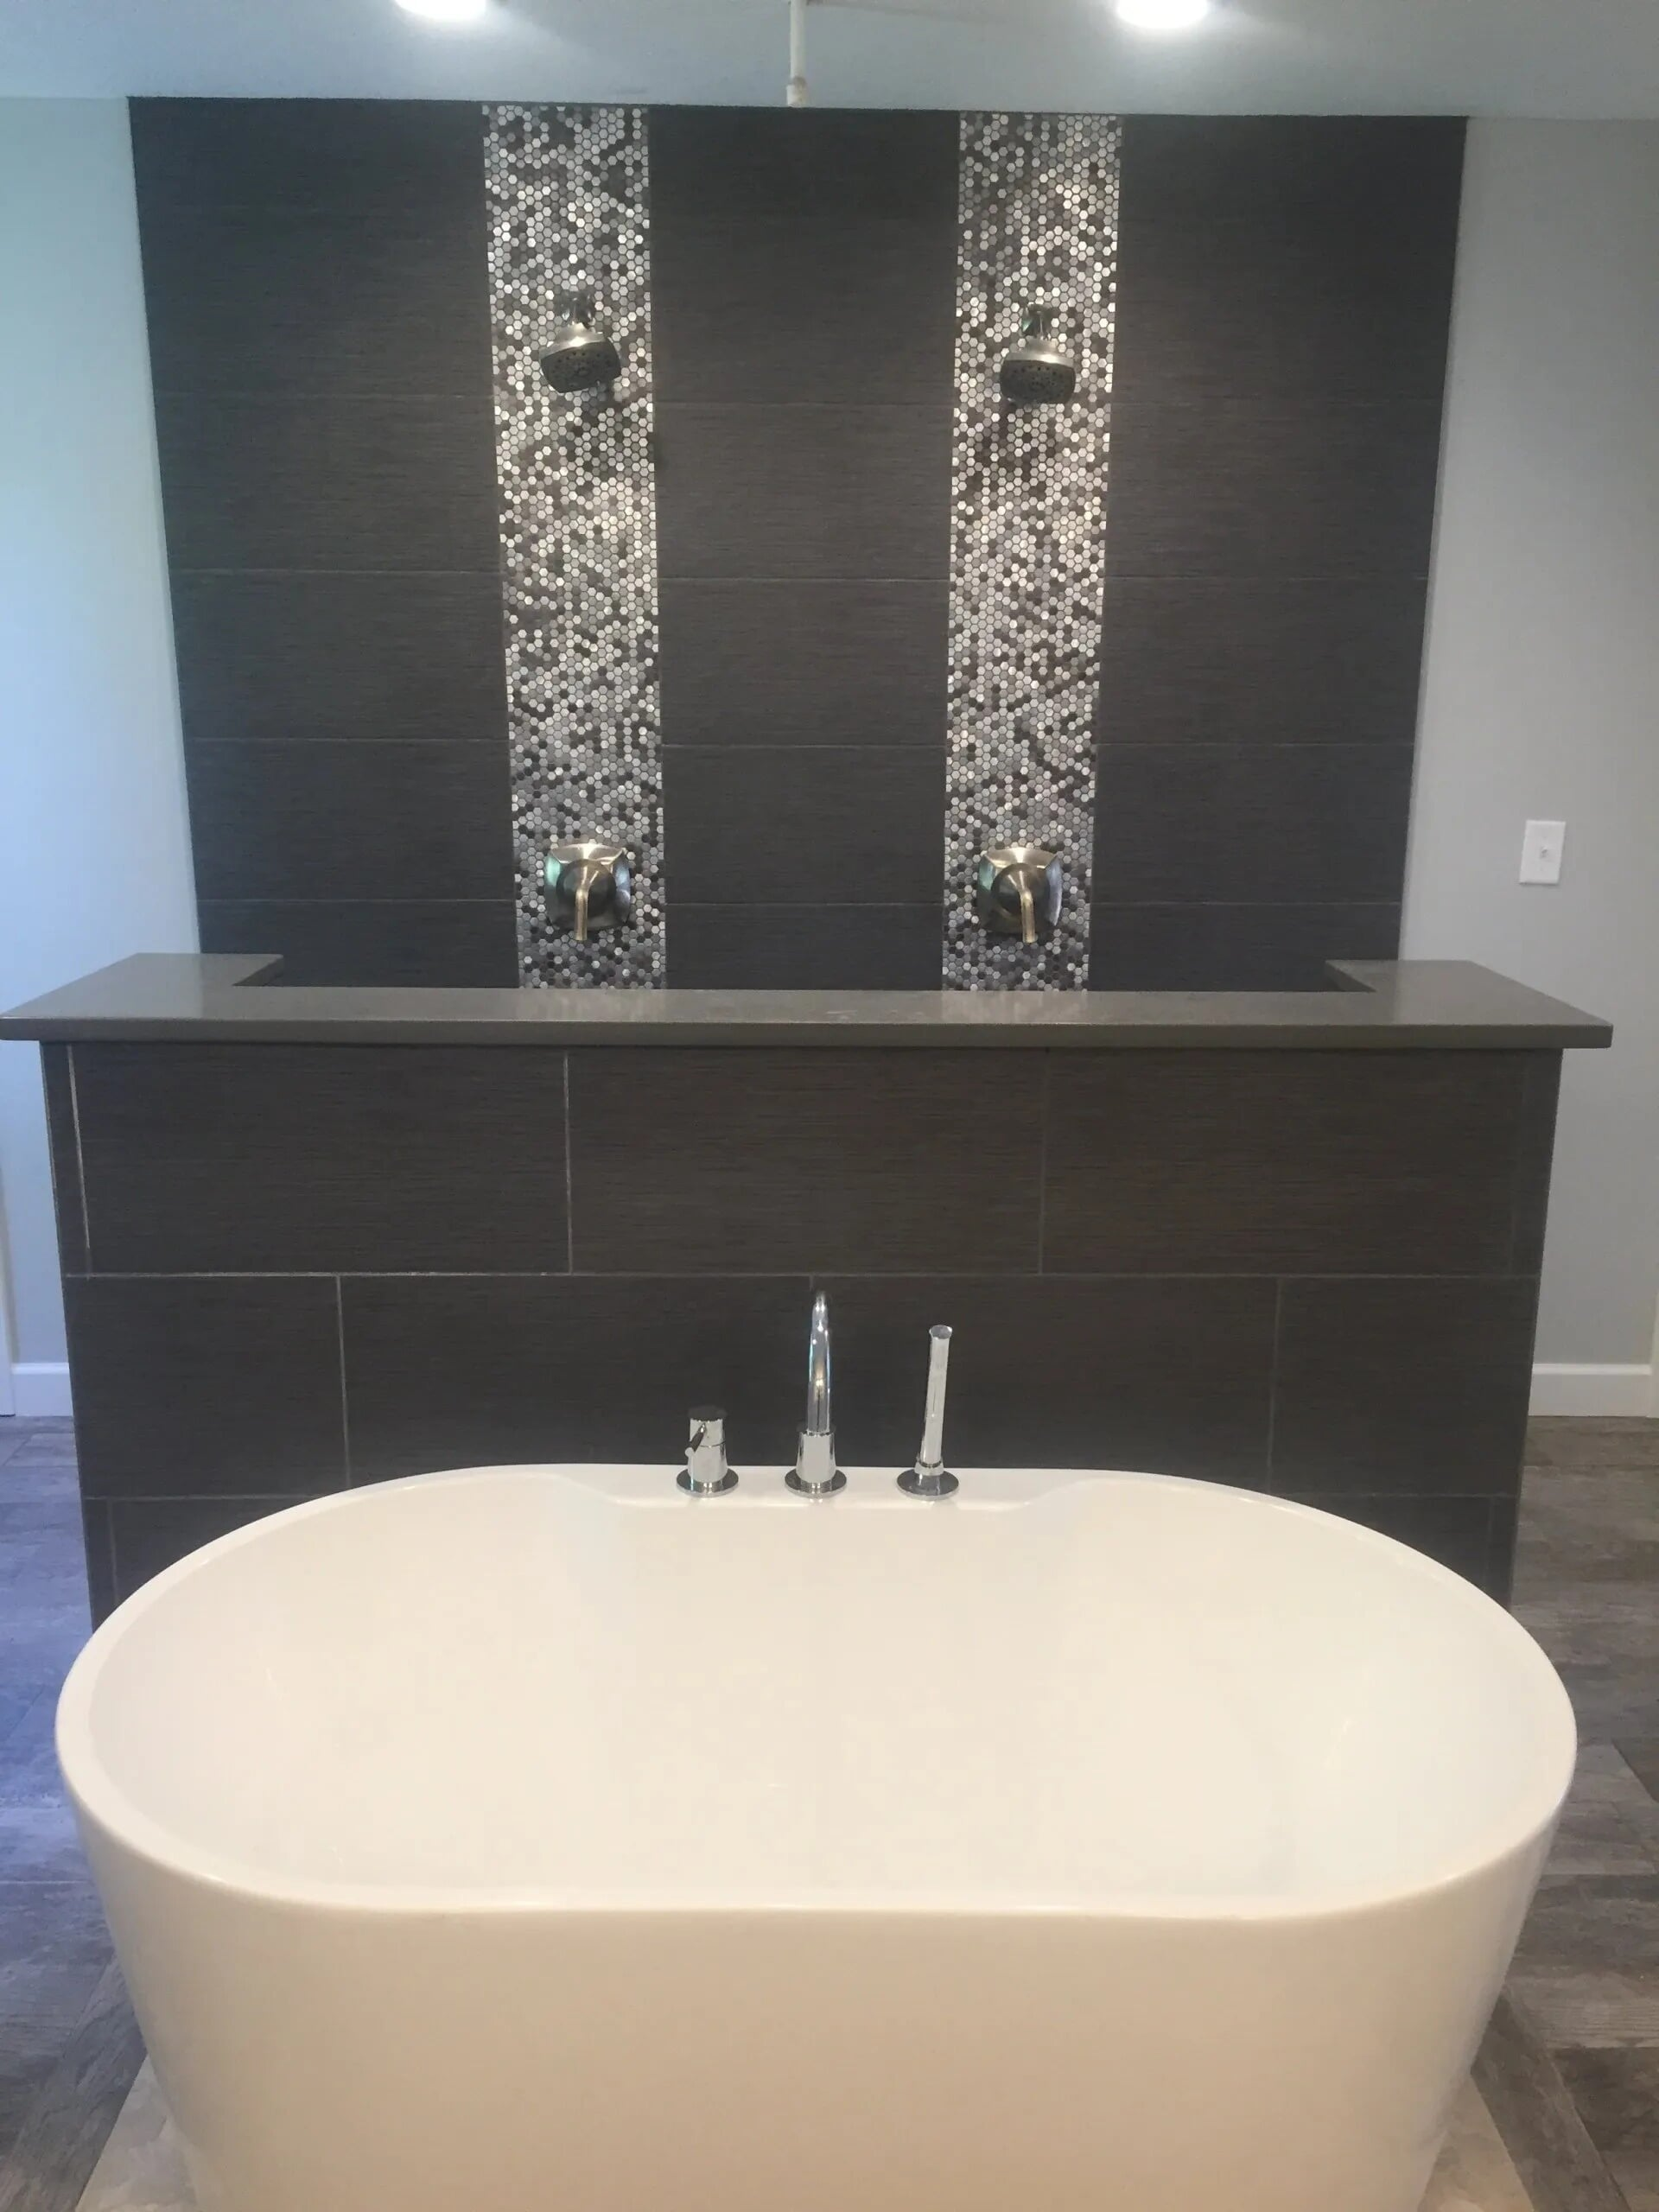 Custom shower and soaking tub installation in Burnsville, MN from Infinite Floors and More